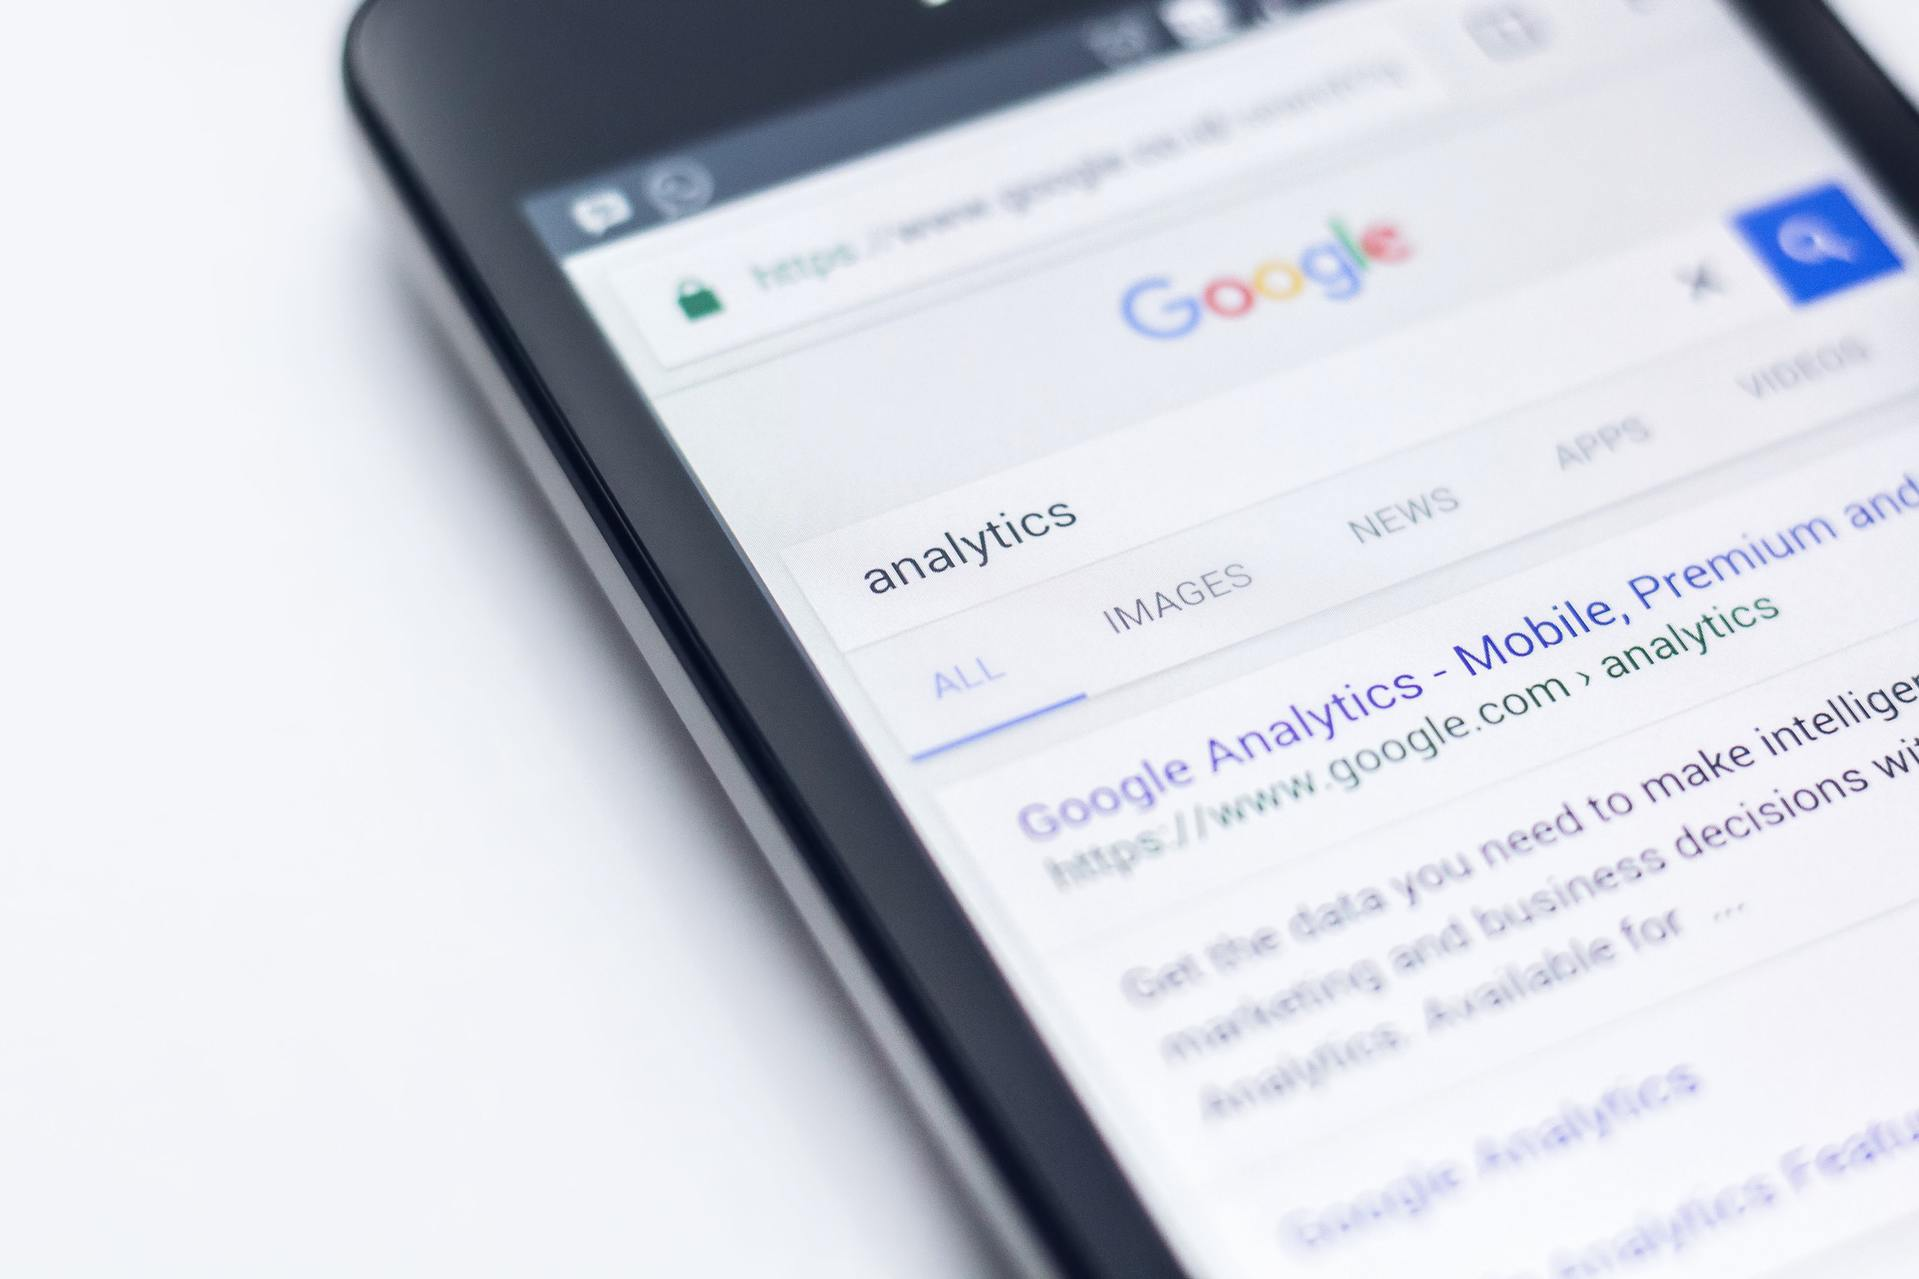 How to clear google search history?